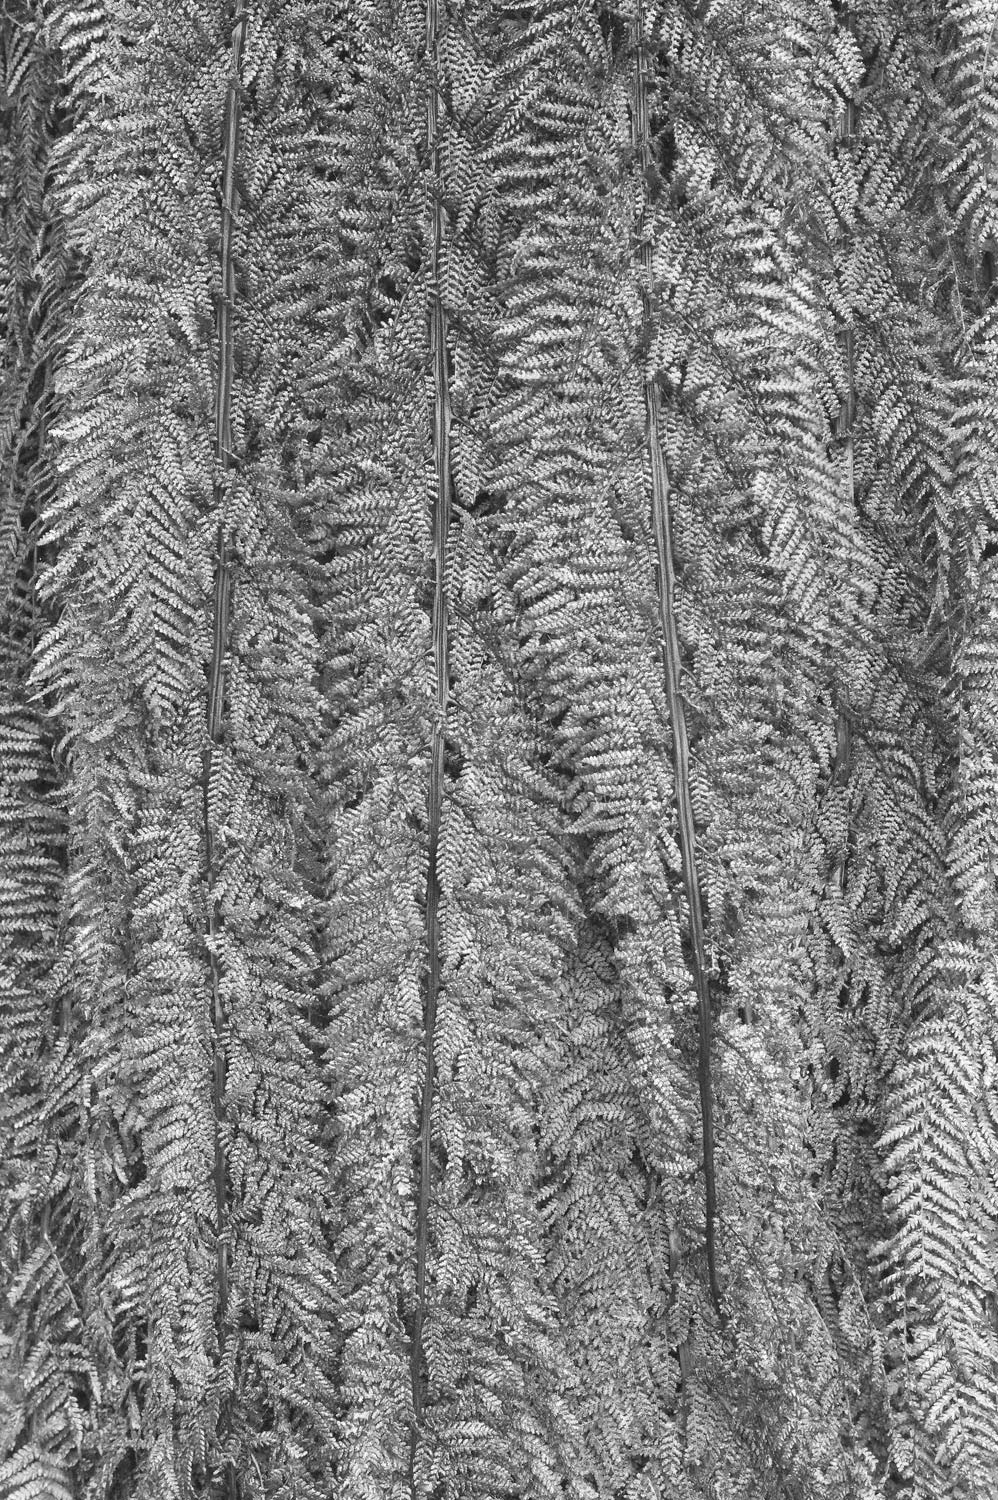 Warren-Hinder-Tree-Fern-Detail-Prince-Henry.jpg